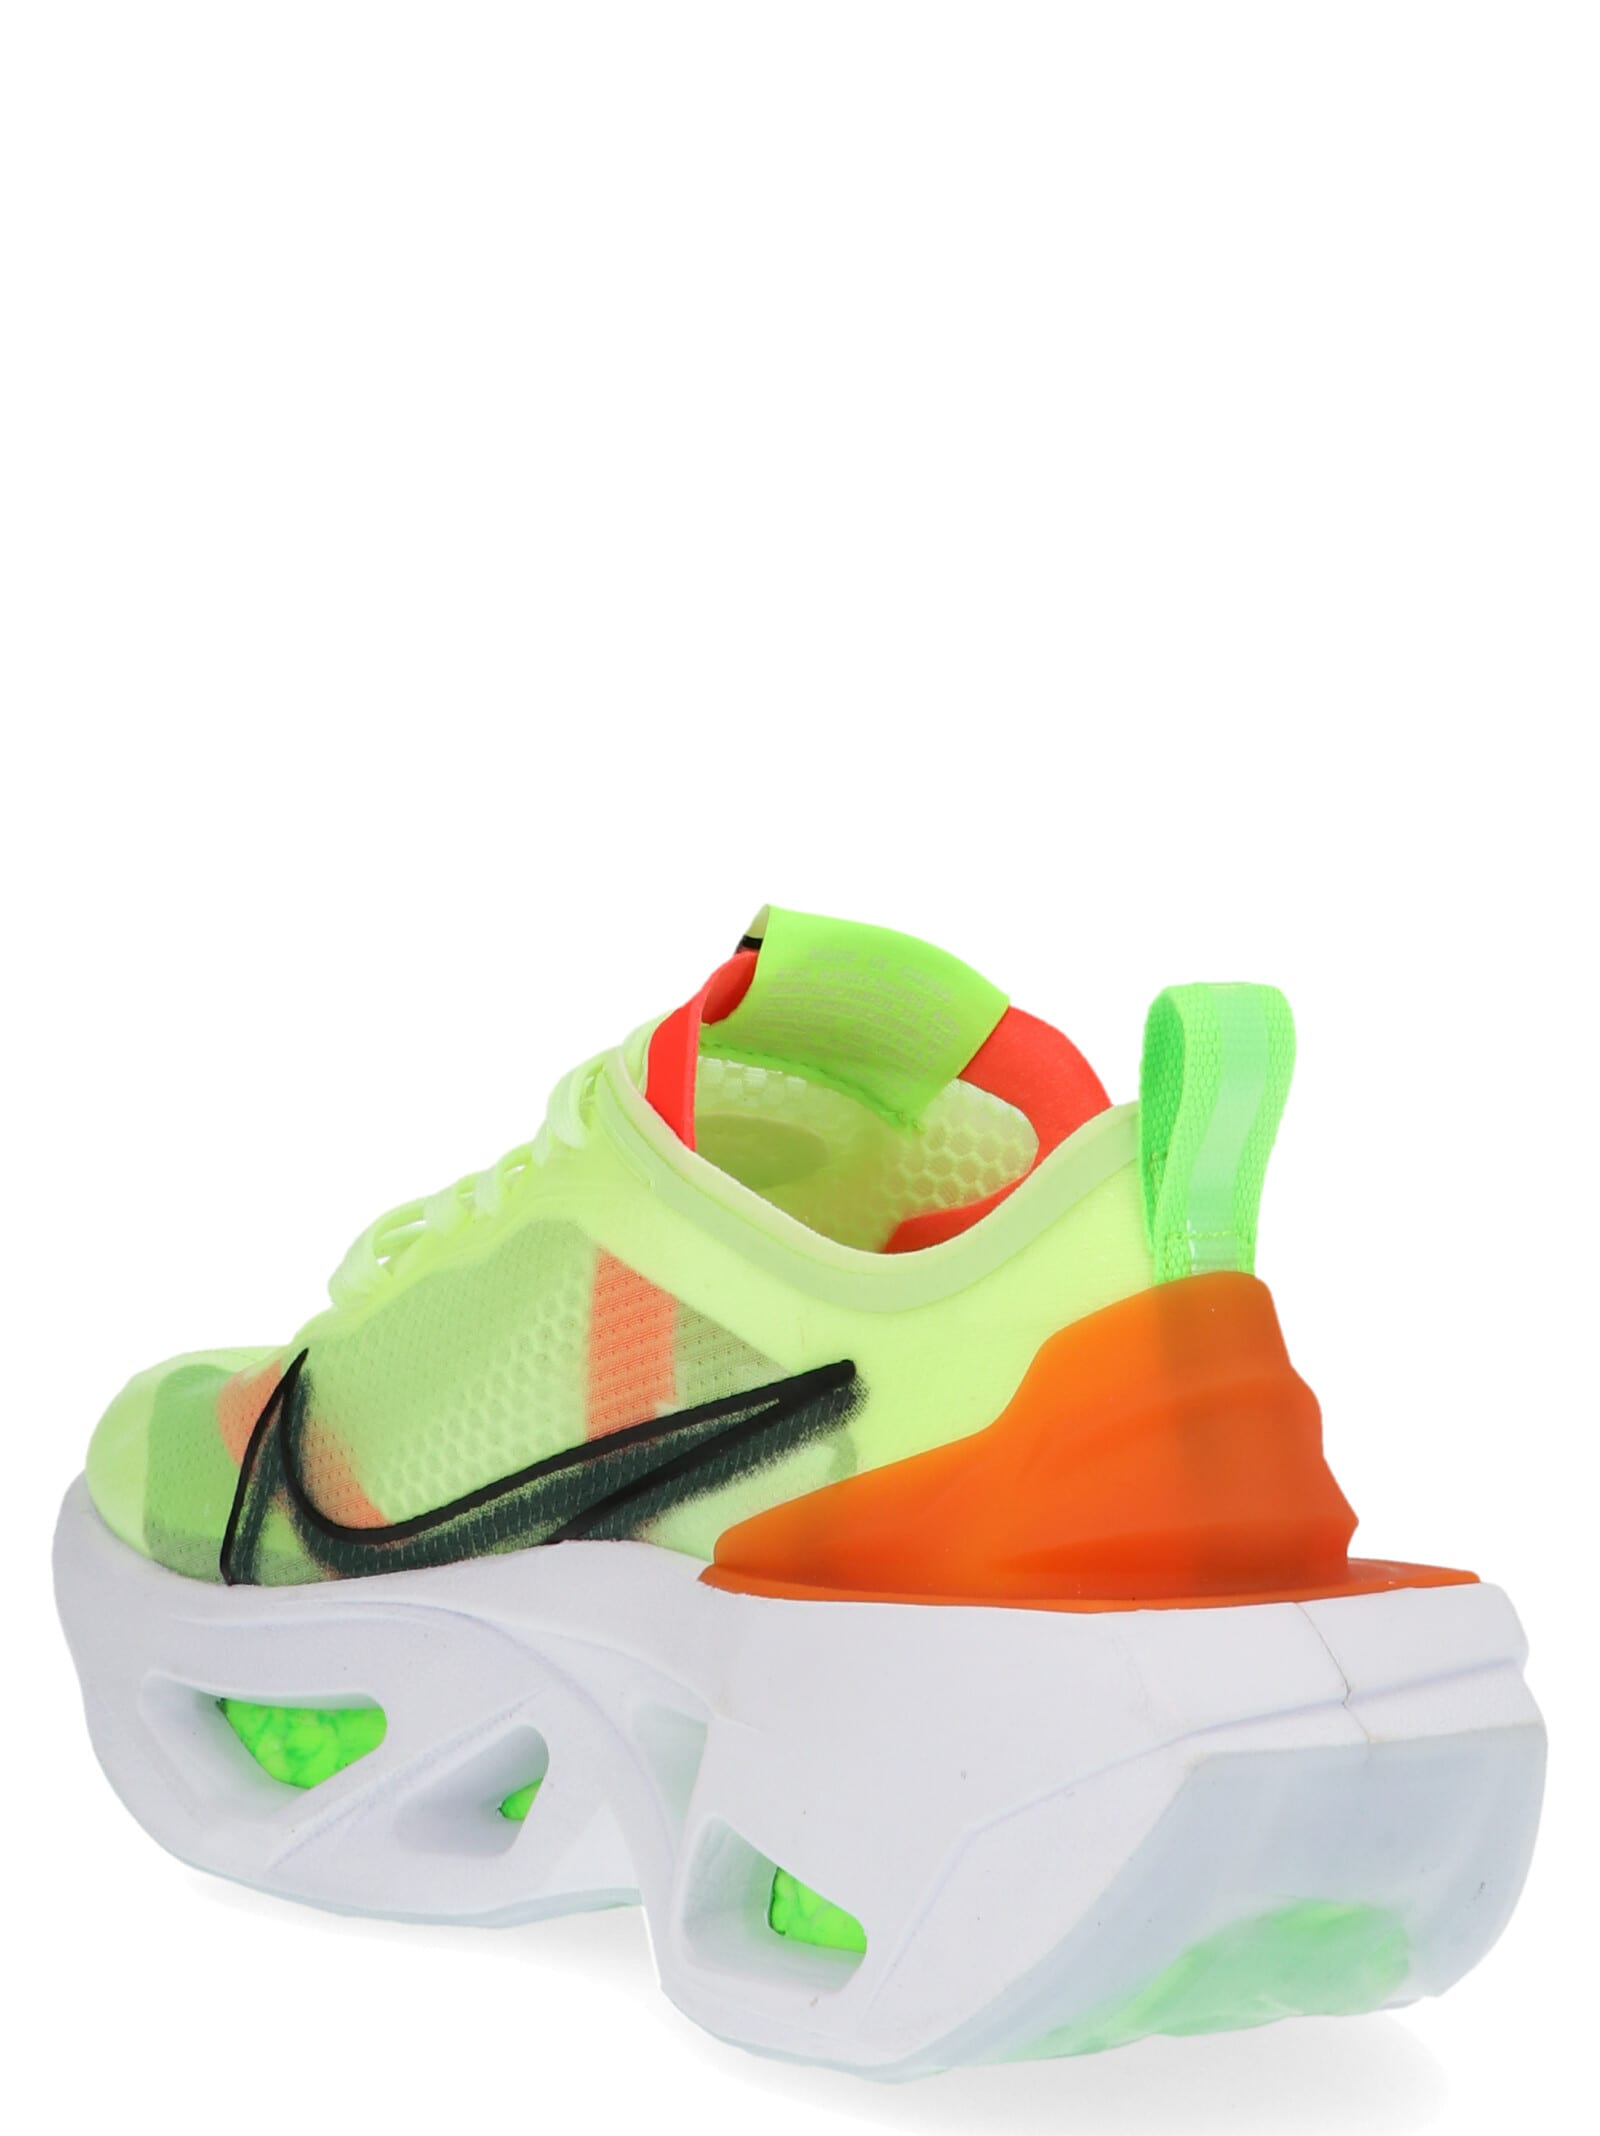 Shoes 'w the Vista Grind' italistNike X at market Nike on price Best Zoom Nike b67fyg